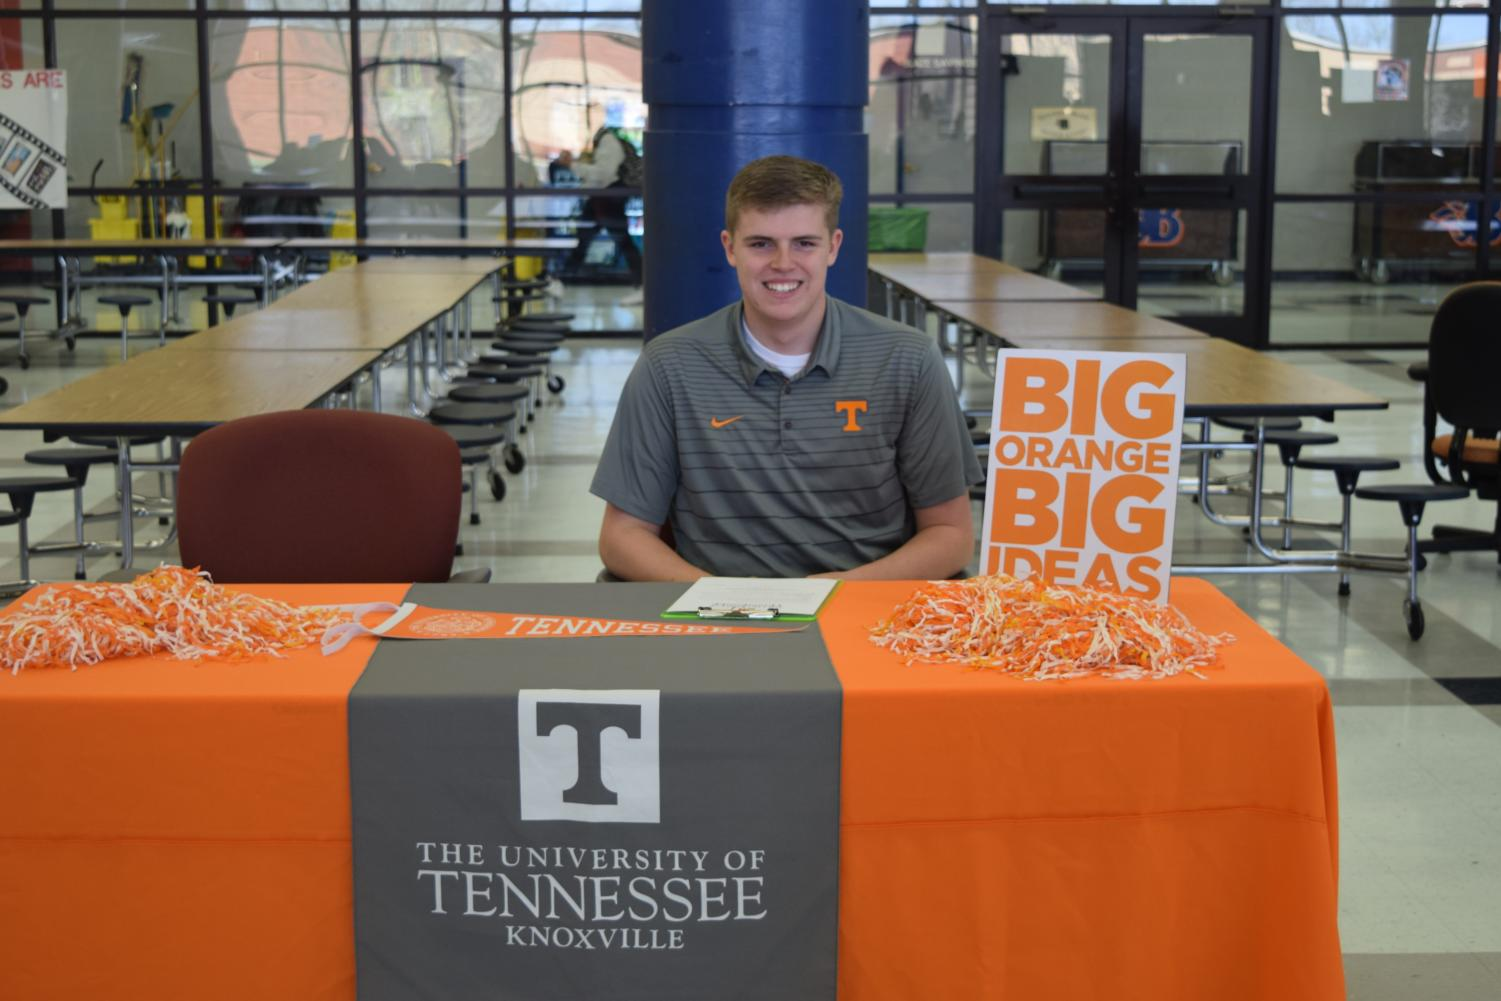 Graison+Sweeney+will+attend+the+University+of+Tennessee%2C+Knoxville+in+the+fall.